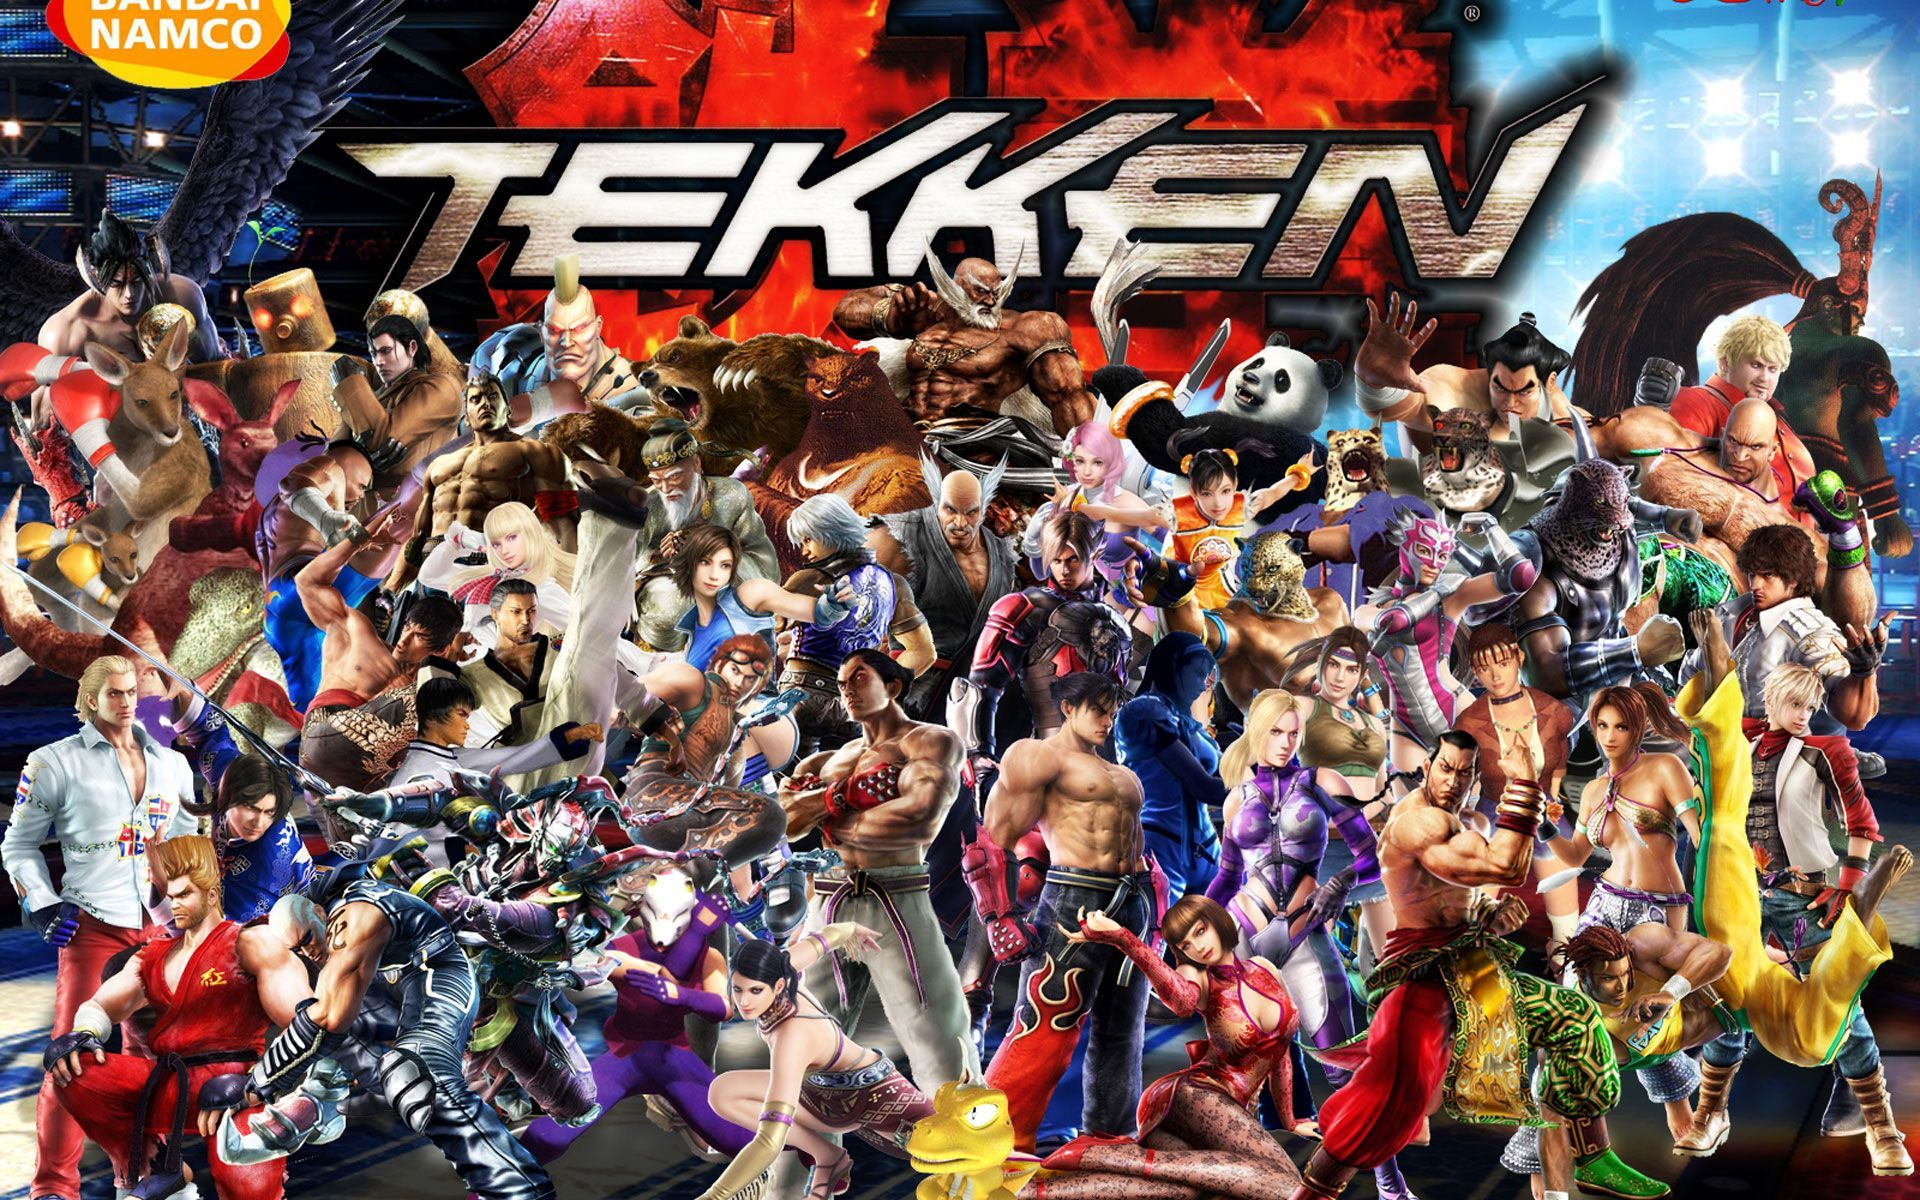 Tekken 7 Wallpapers Wallpaper Cave Character Wallpaper Street Fighter Wallpaper Wallpaper